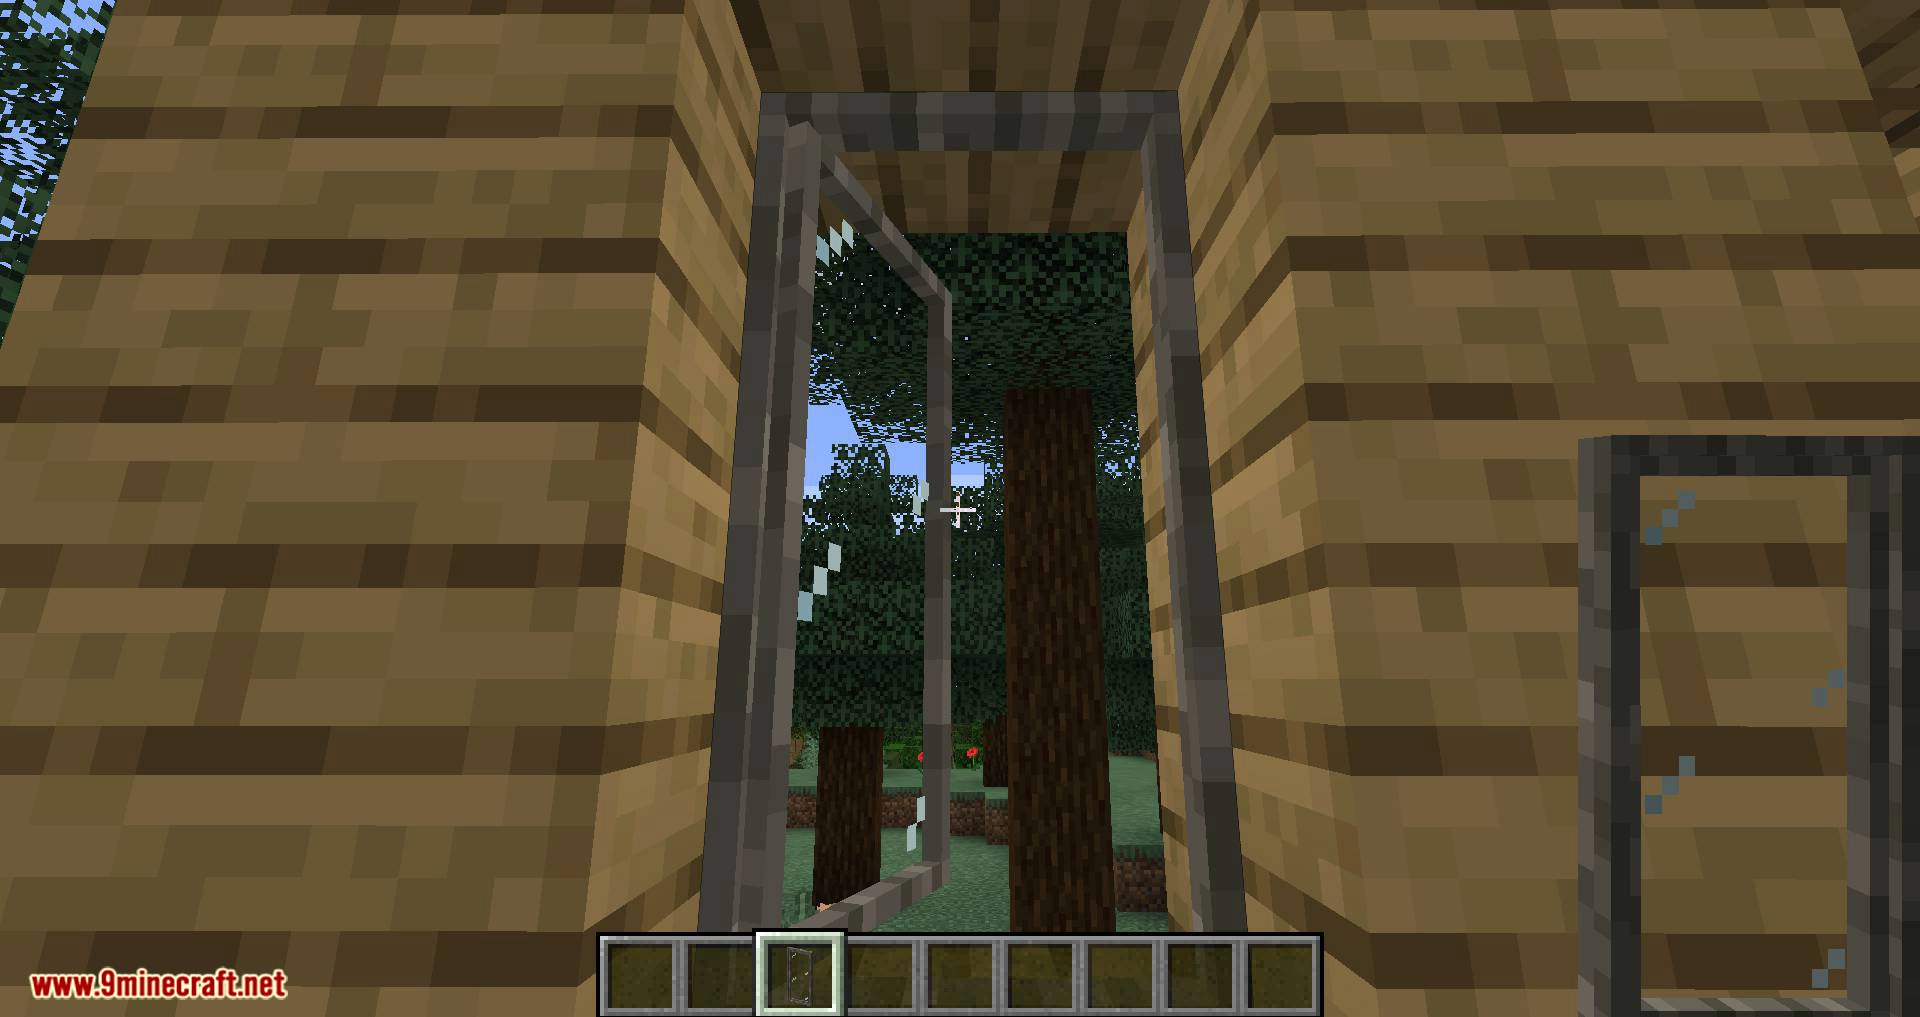 Macaw_s Windows mod for minecraft 10